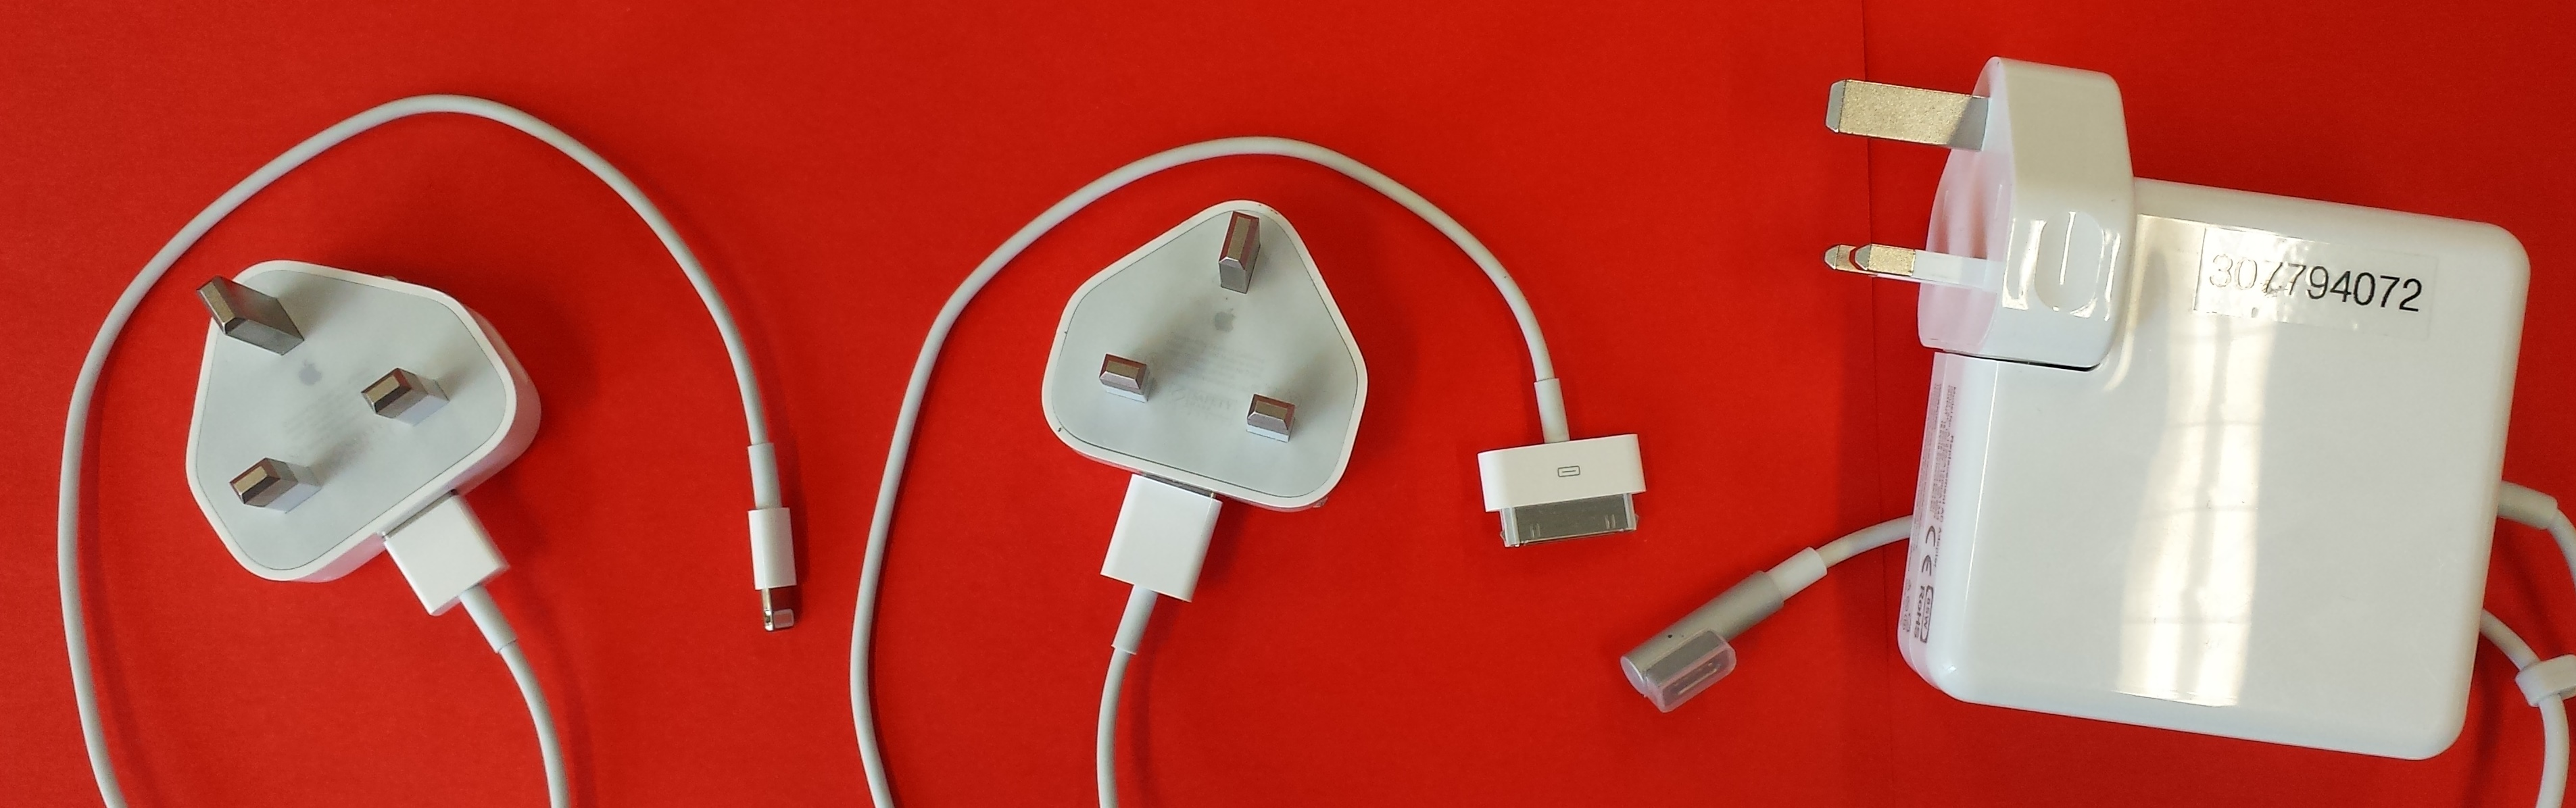 Apple Chargers 2 (Apr 16) Cropped